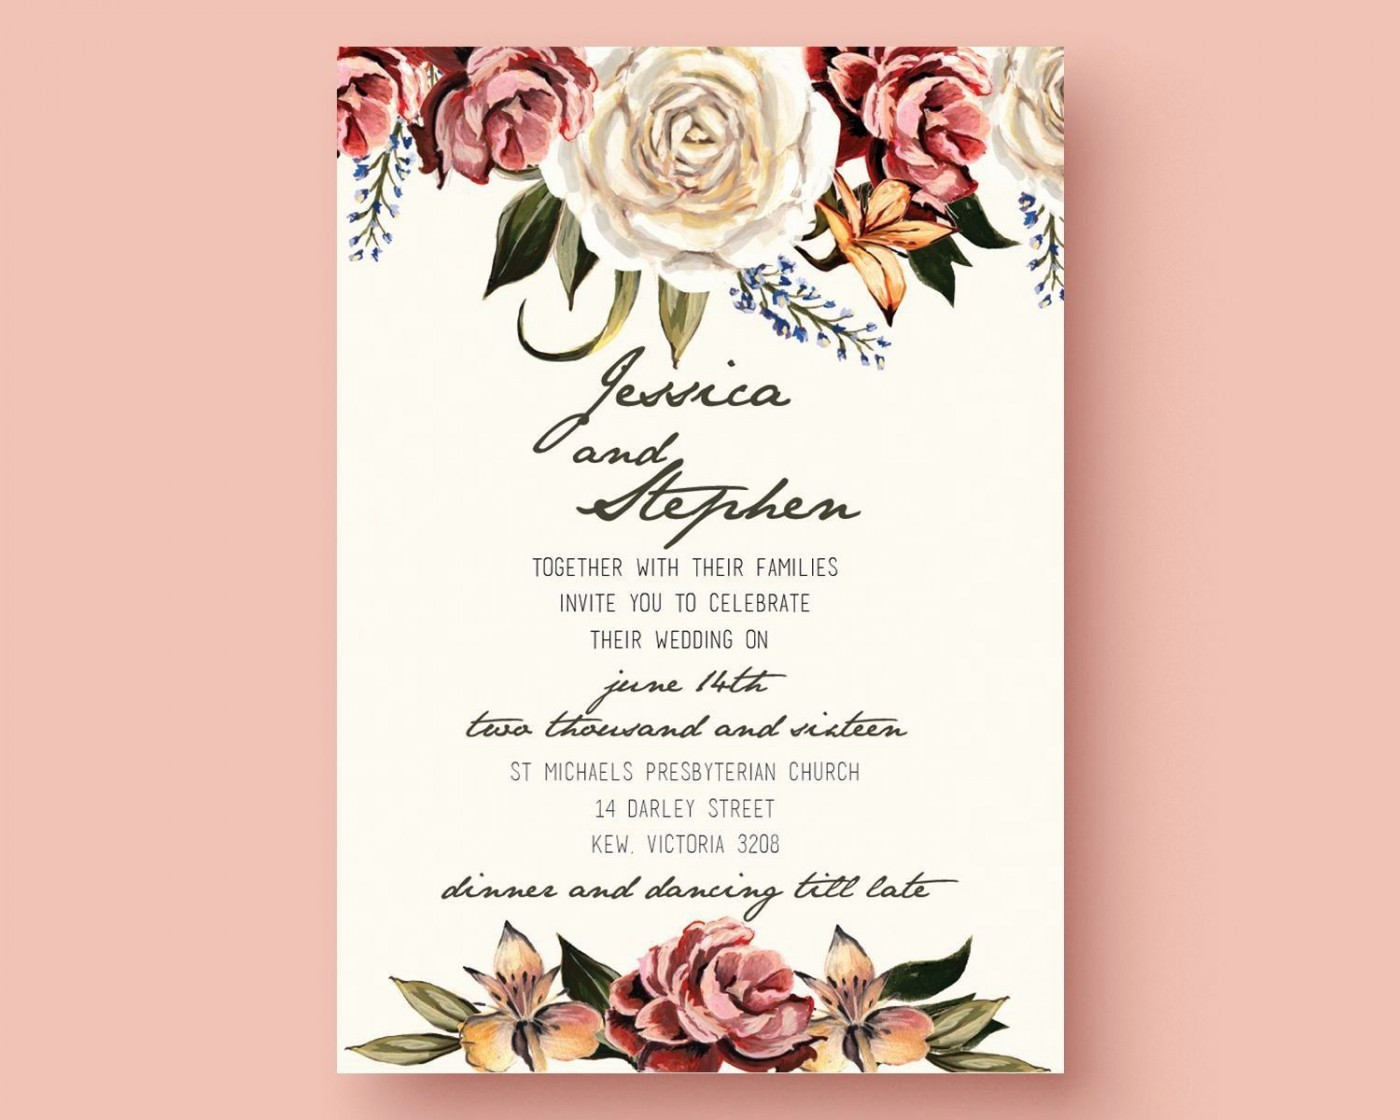 002 Awesome Free Download Marriage Invitation Template Inspiration  Card Design Psd After Effect1400